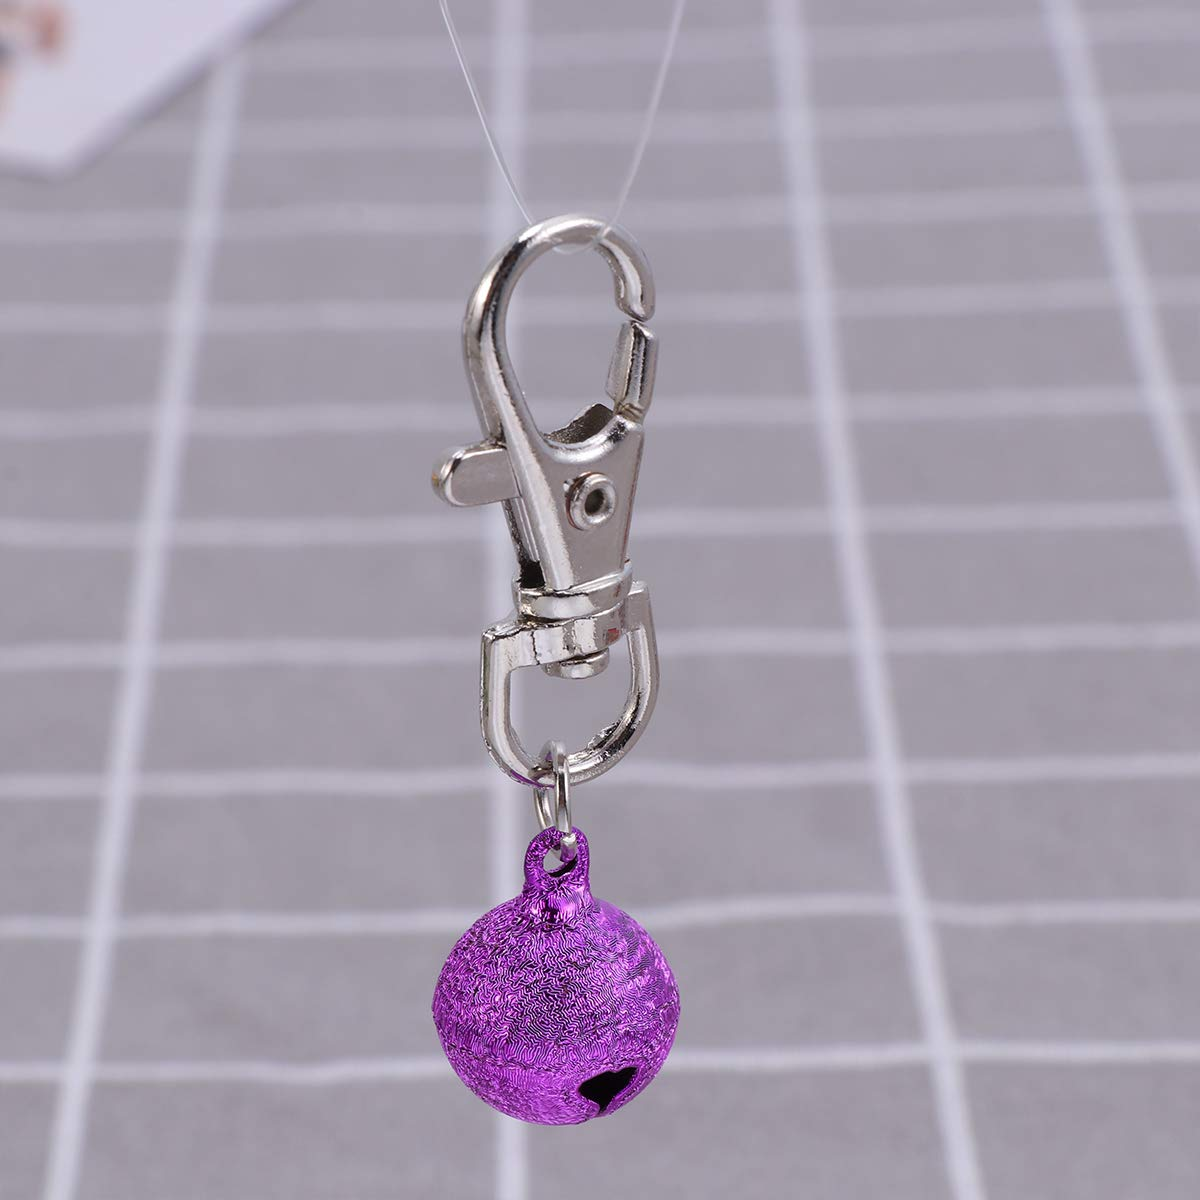 POPETPOP Cat Bells Loud-Pet Pendant Necklace Bell Dog Bell Charm-24pcs Cool Colorful Sandblasting Bell Pets Accessories with Key Chain Random Color